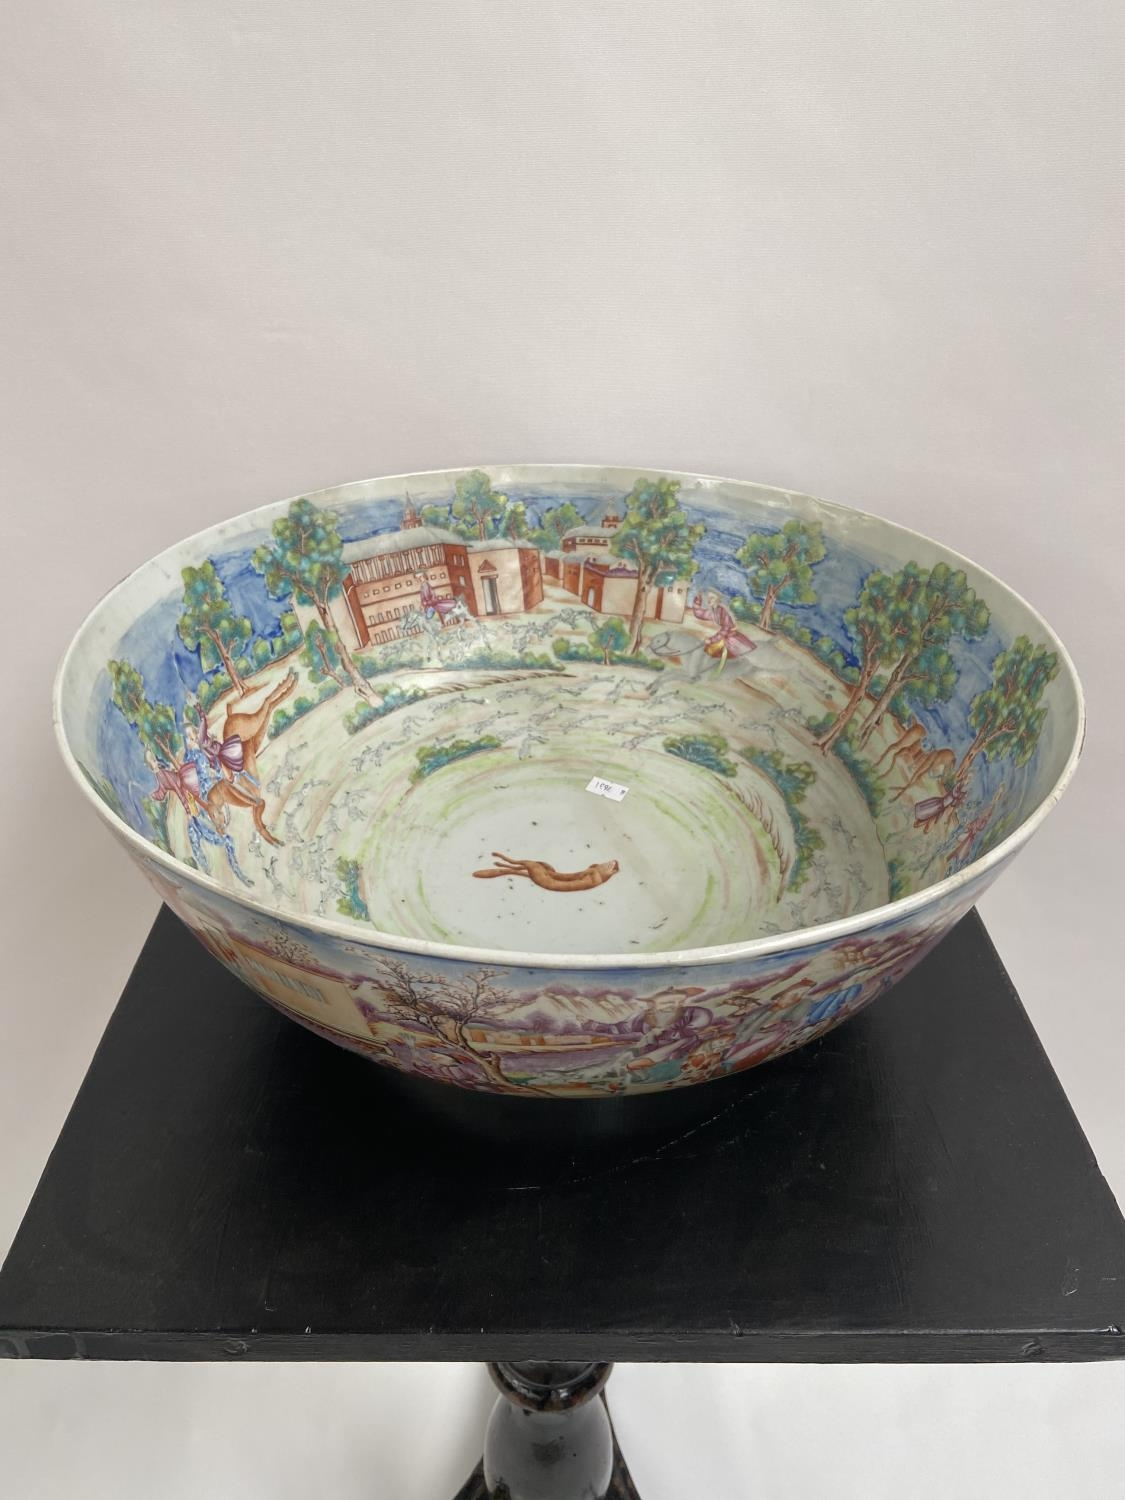 A LARGE 19TH CENTURY CHINESE HAND PAINTED BOWL. EXTERIOR DEPICTS CHINESE HUNTING SCENE PANELS. THE